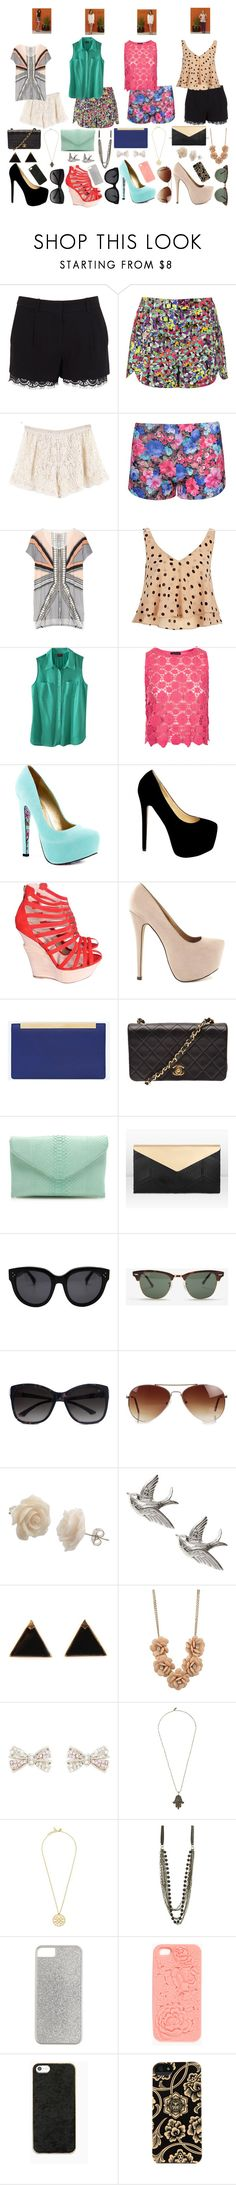 """""""The Lying Game Outfits"""" by daniellenicole ❤ liked on Polyvore featuring Diane Von Furstenberg, Chando, jared, Topshop, sass & bide, River Island, Merona, TaylorSays, Nly Shoes and Yves Saint Laurent"""